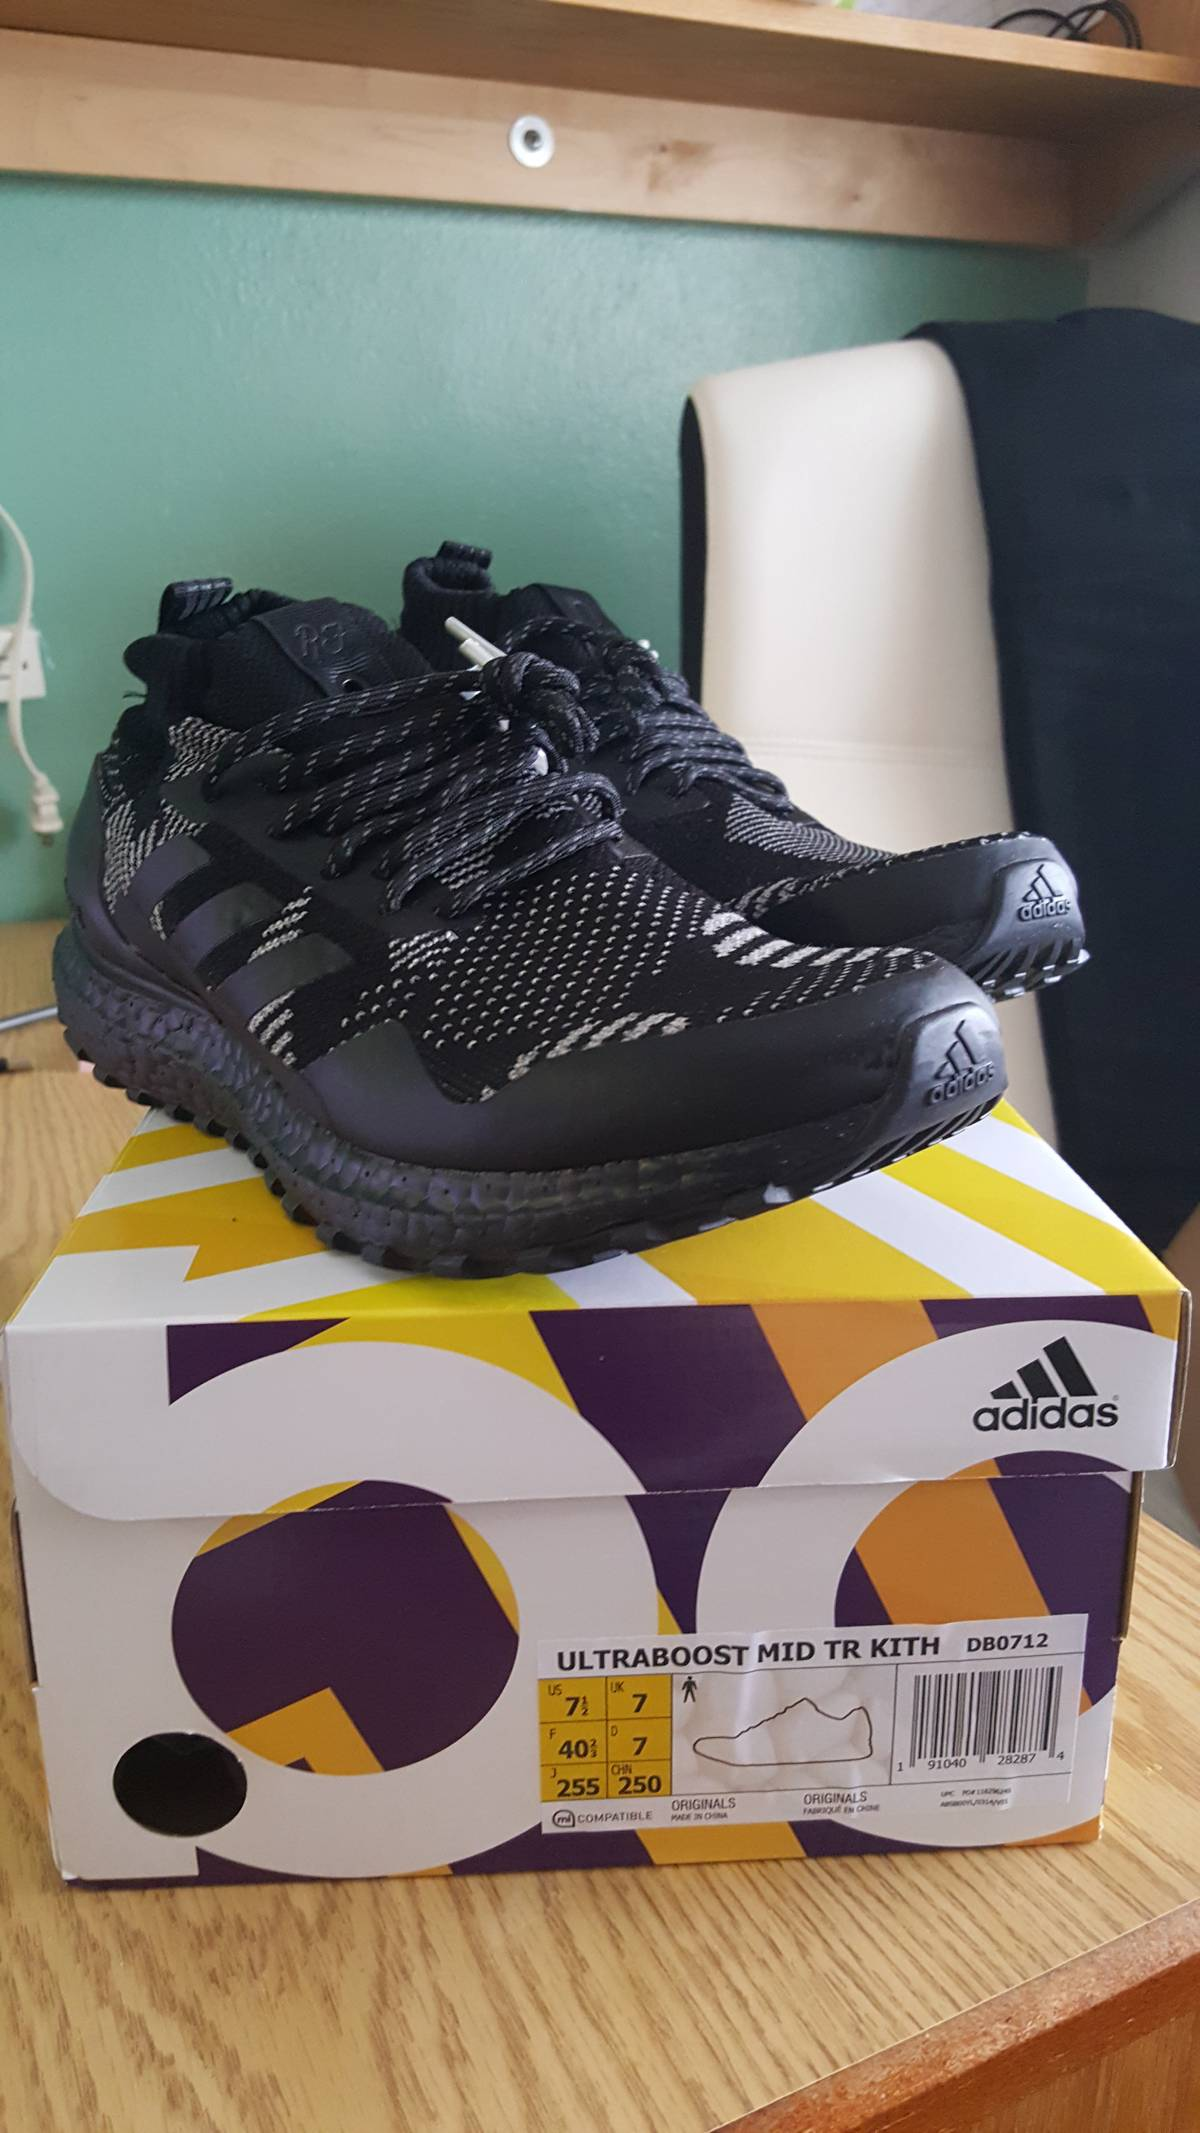 0f34f6927b2367 Adidas ULTRABOOST MID TR KITH Size 7.5 - Low-Top Sneakers for Sale ...